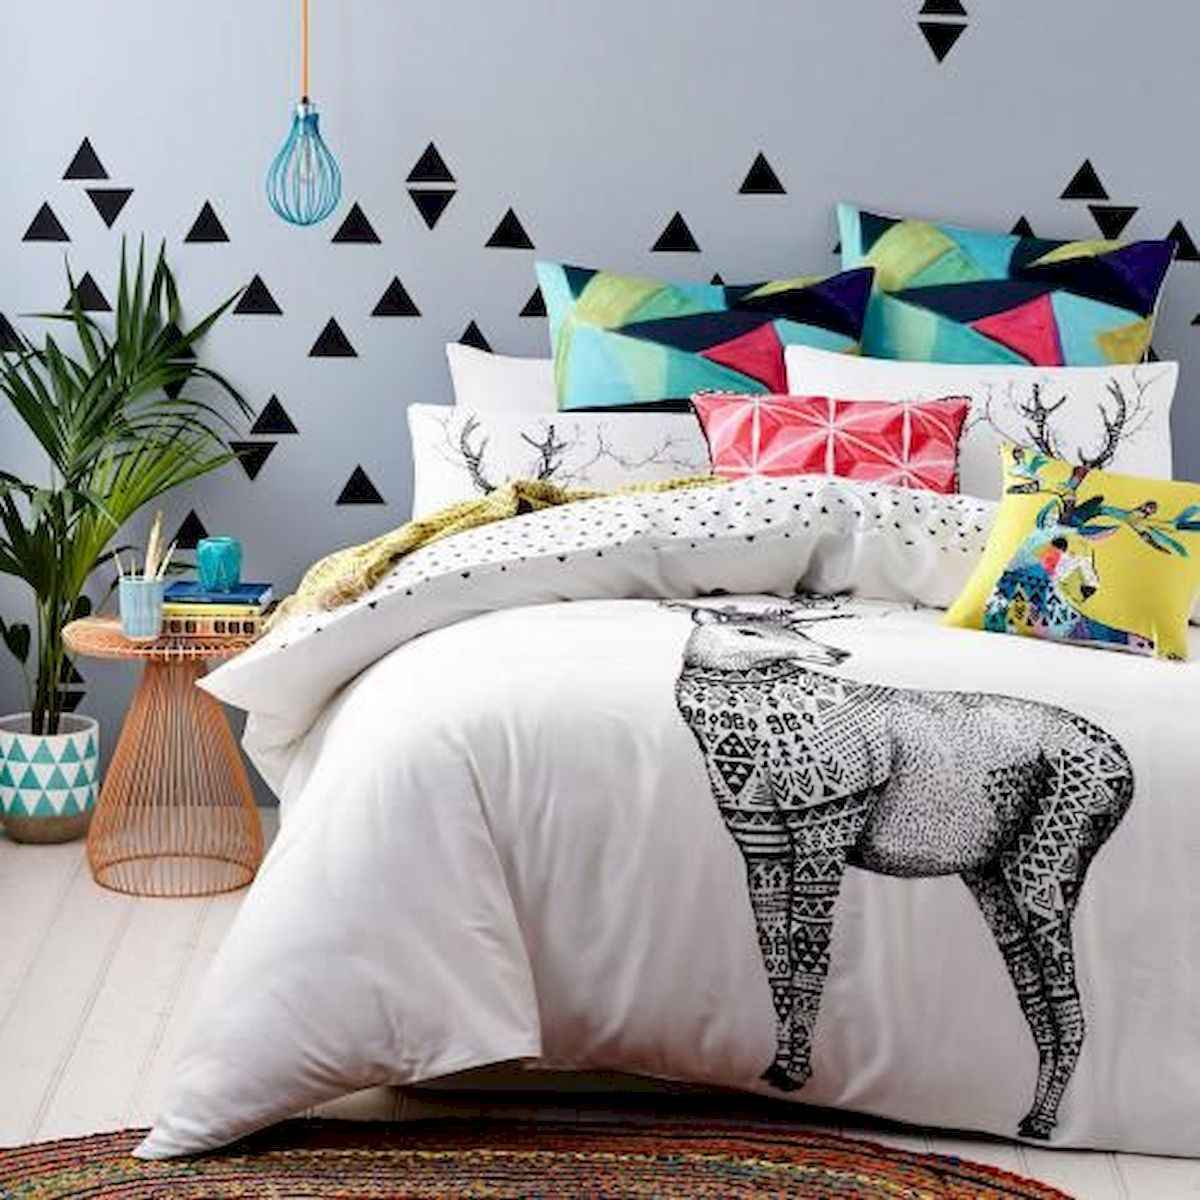 70+ Amazing Colorful Bedroom Decor Ideas And Remodel for Summer Project (54)